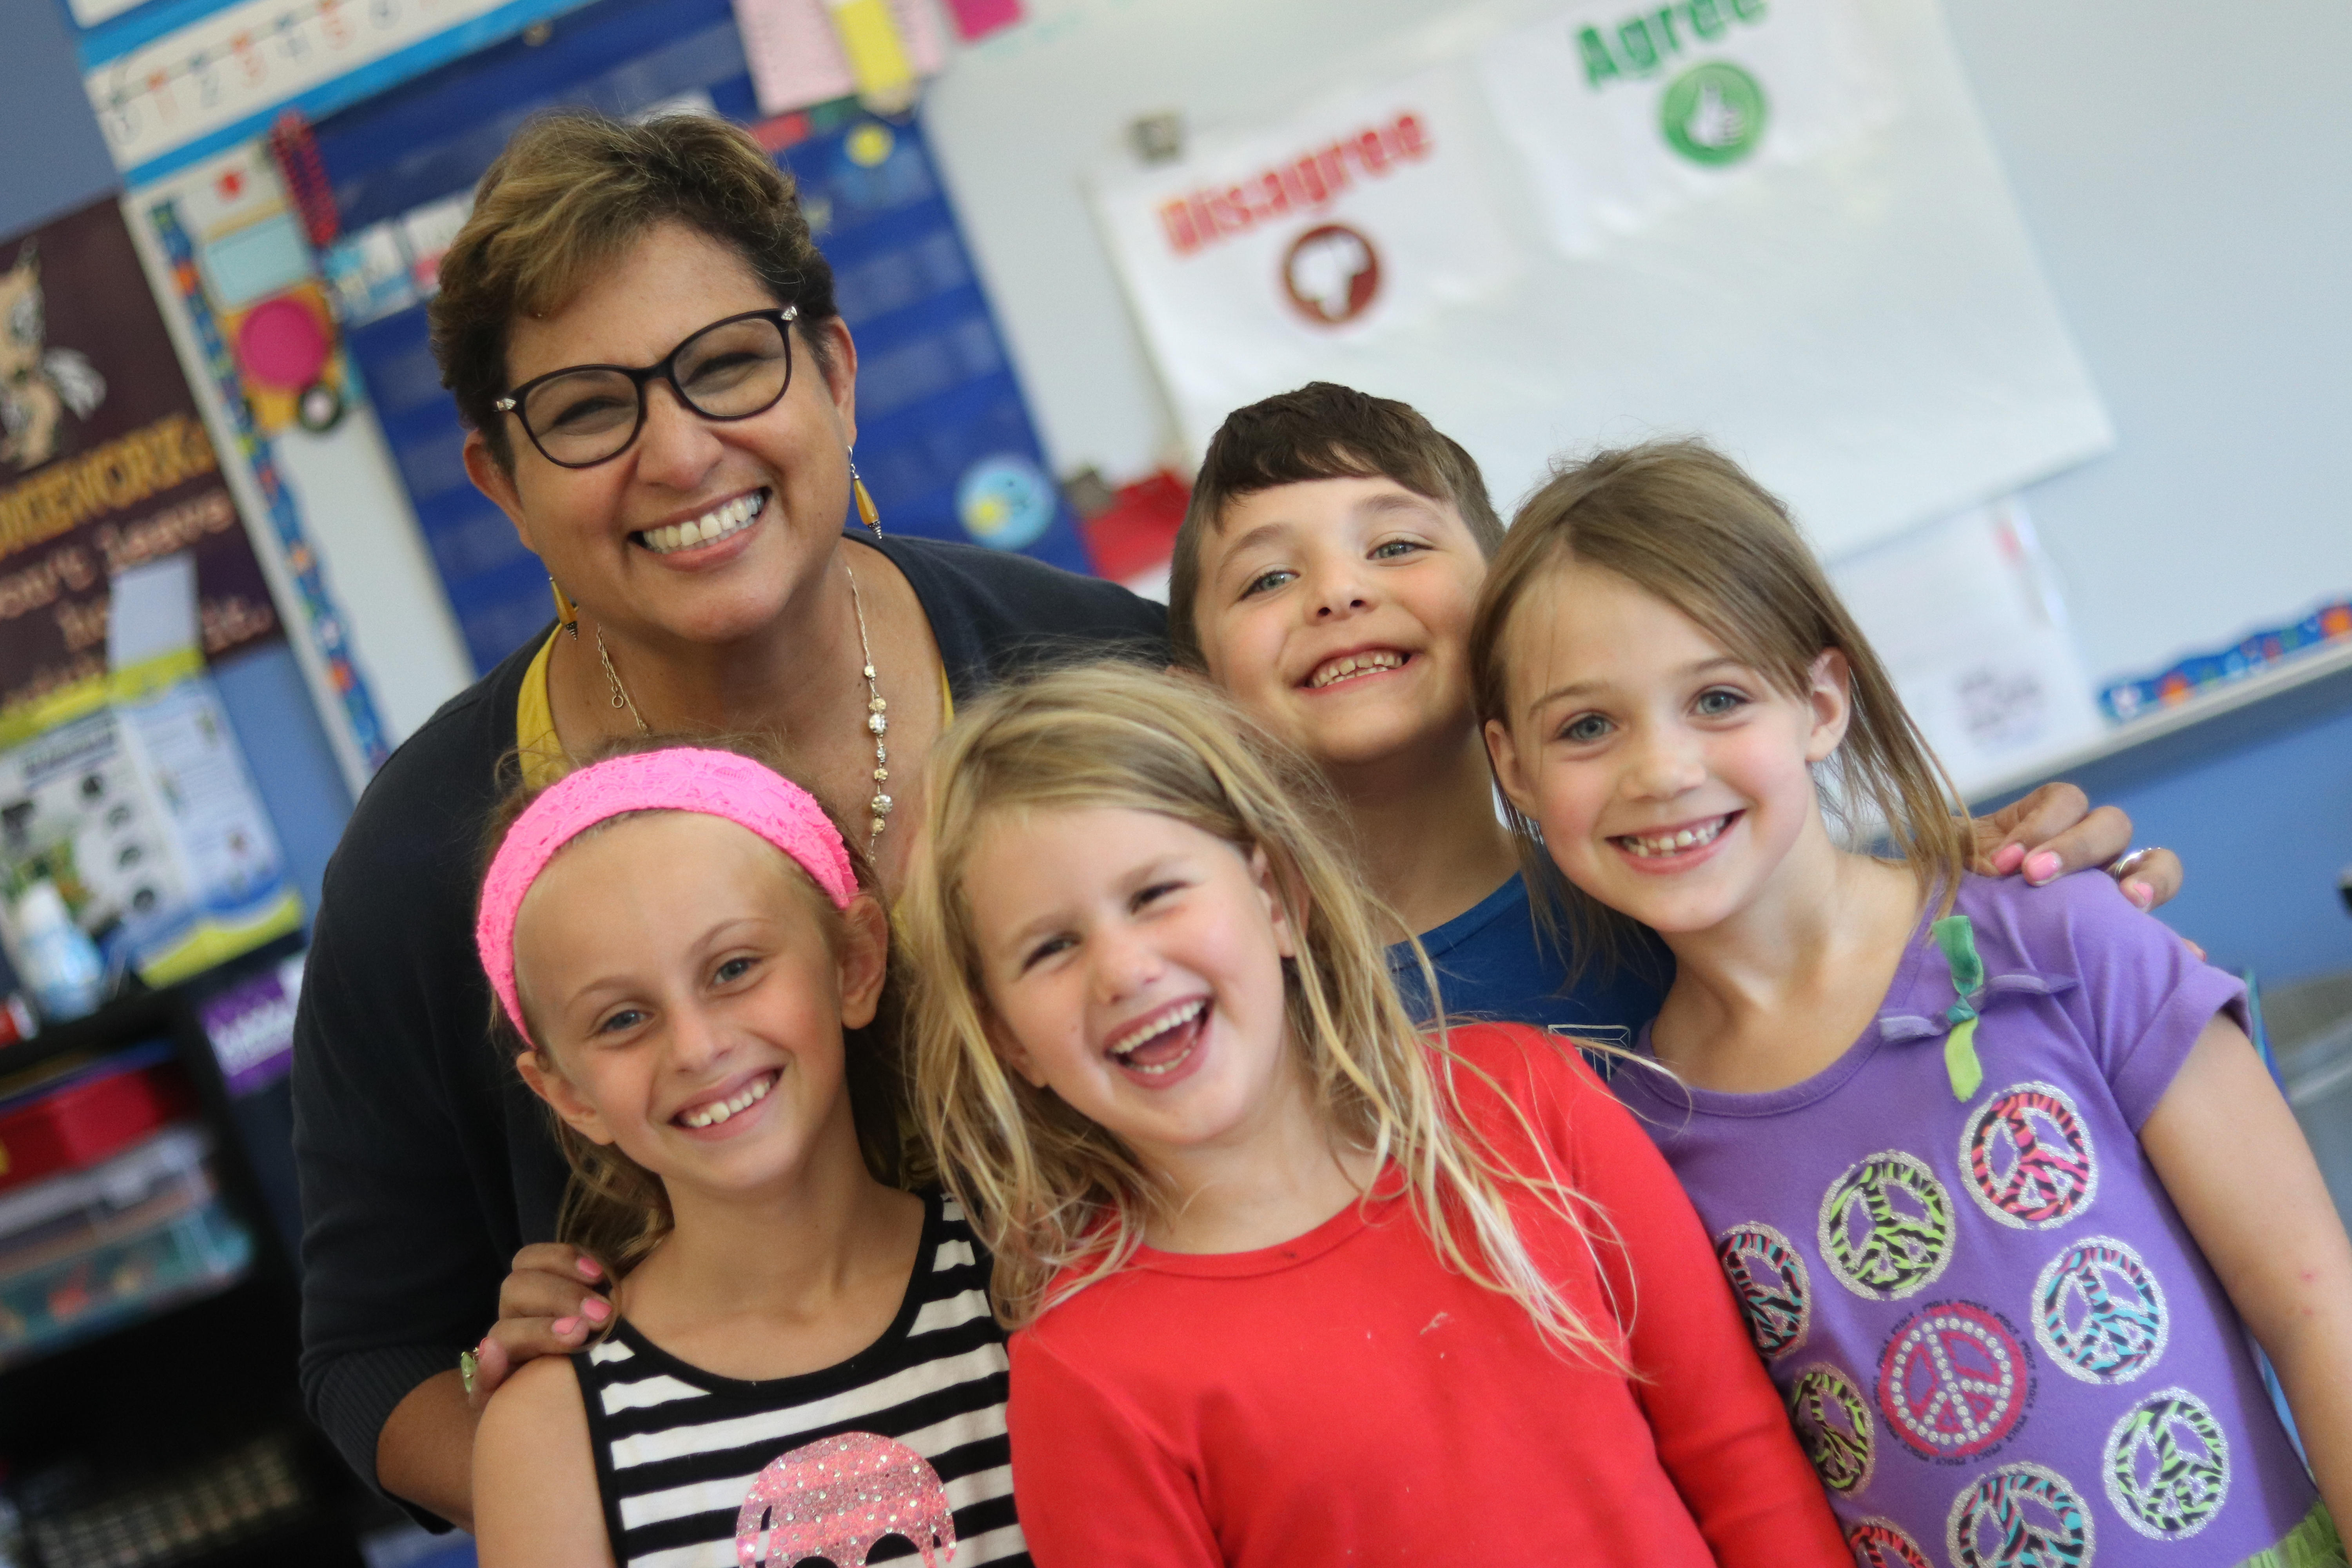 Teacher smiling with a group of students.